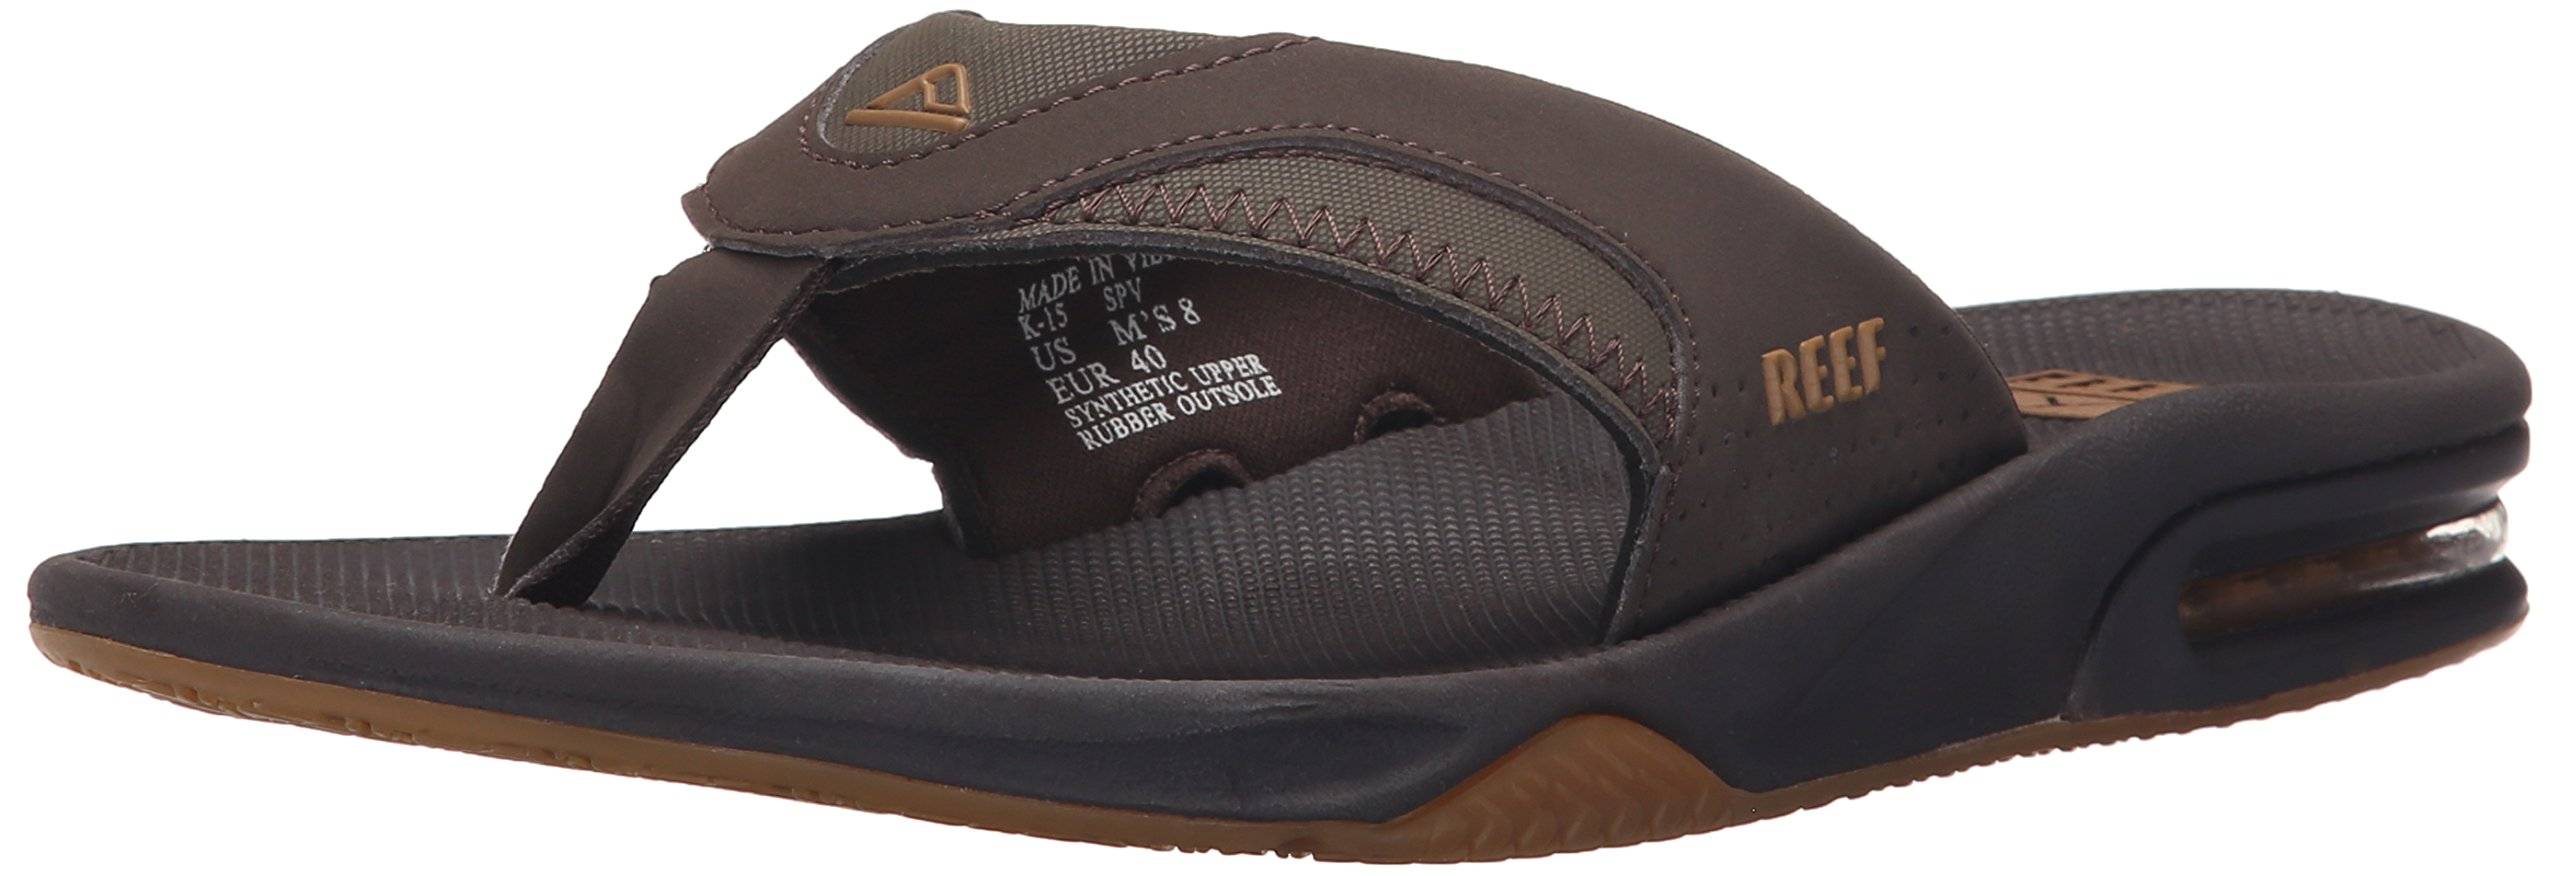 Reef Men's Fanning Flip Flop, Brown/Gum, 15 D-Medium